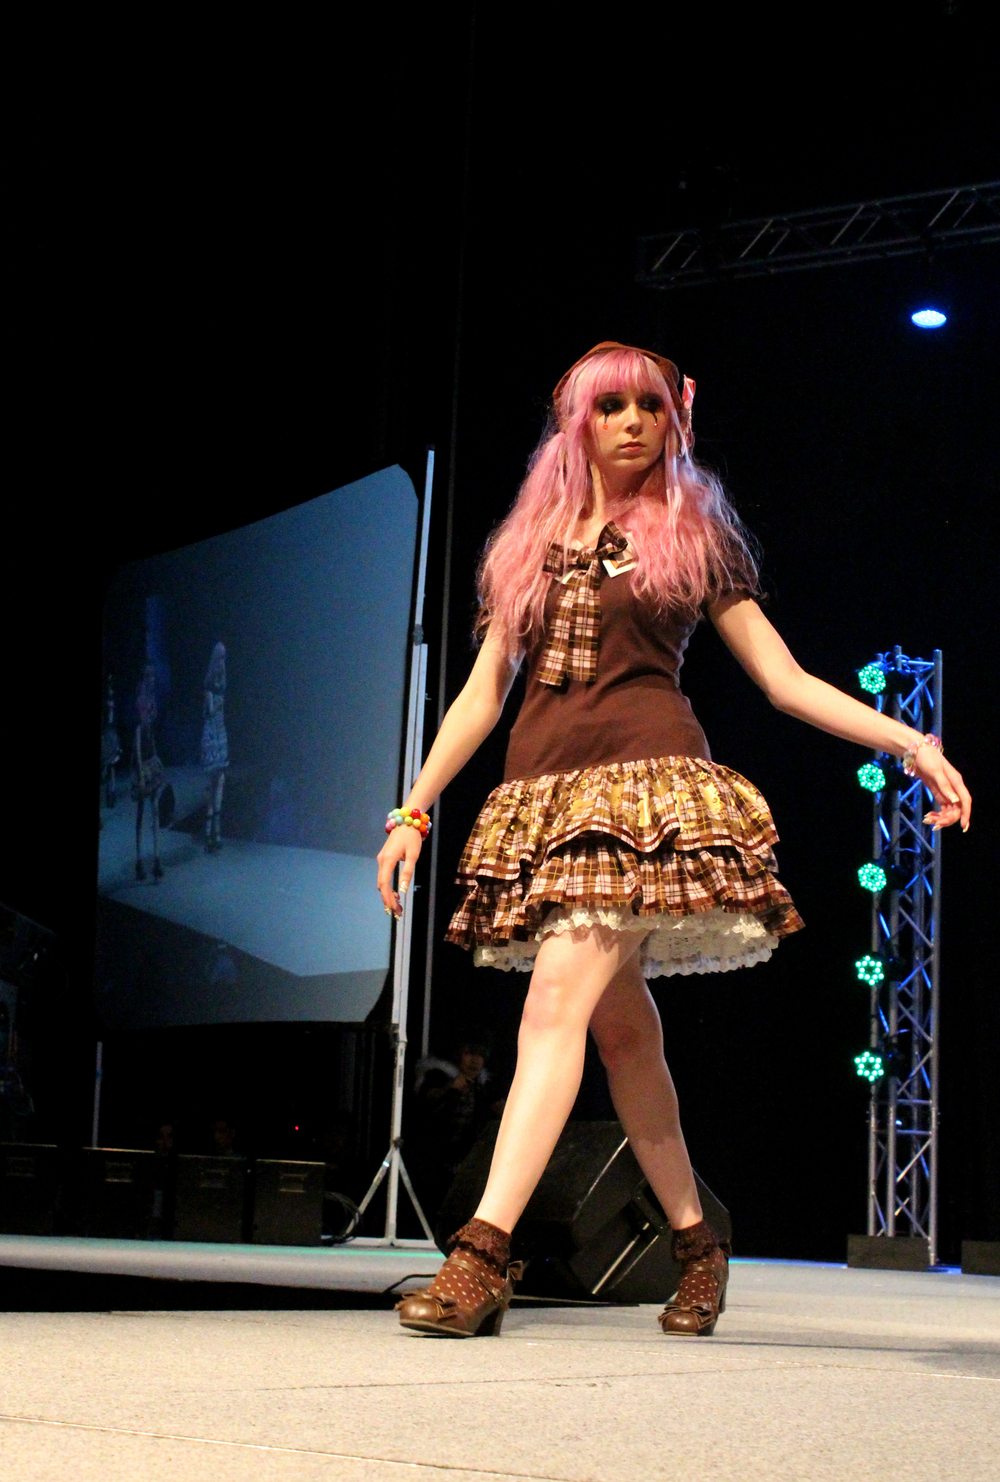 Becky Maset walks down the runway at Anime Matsuri's Lolita fashion show. Anime Matsuri hosts the largest Japanese fashion show in the United States.